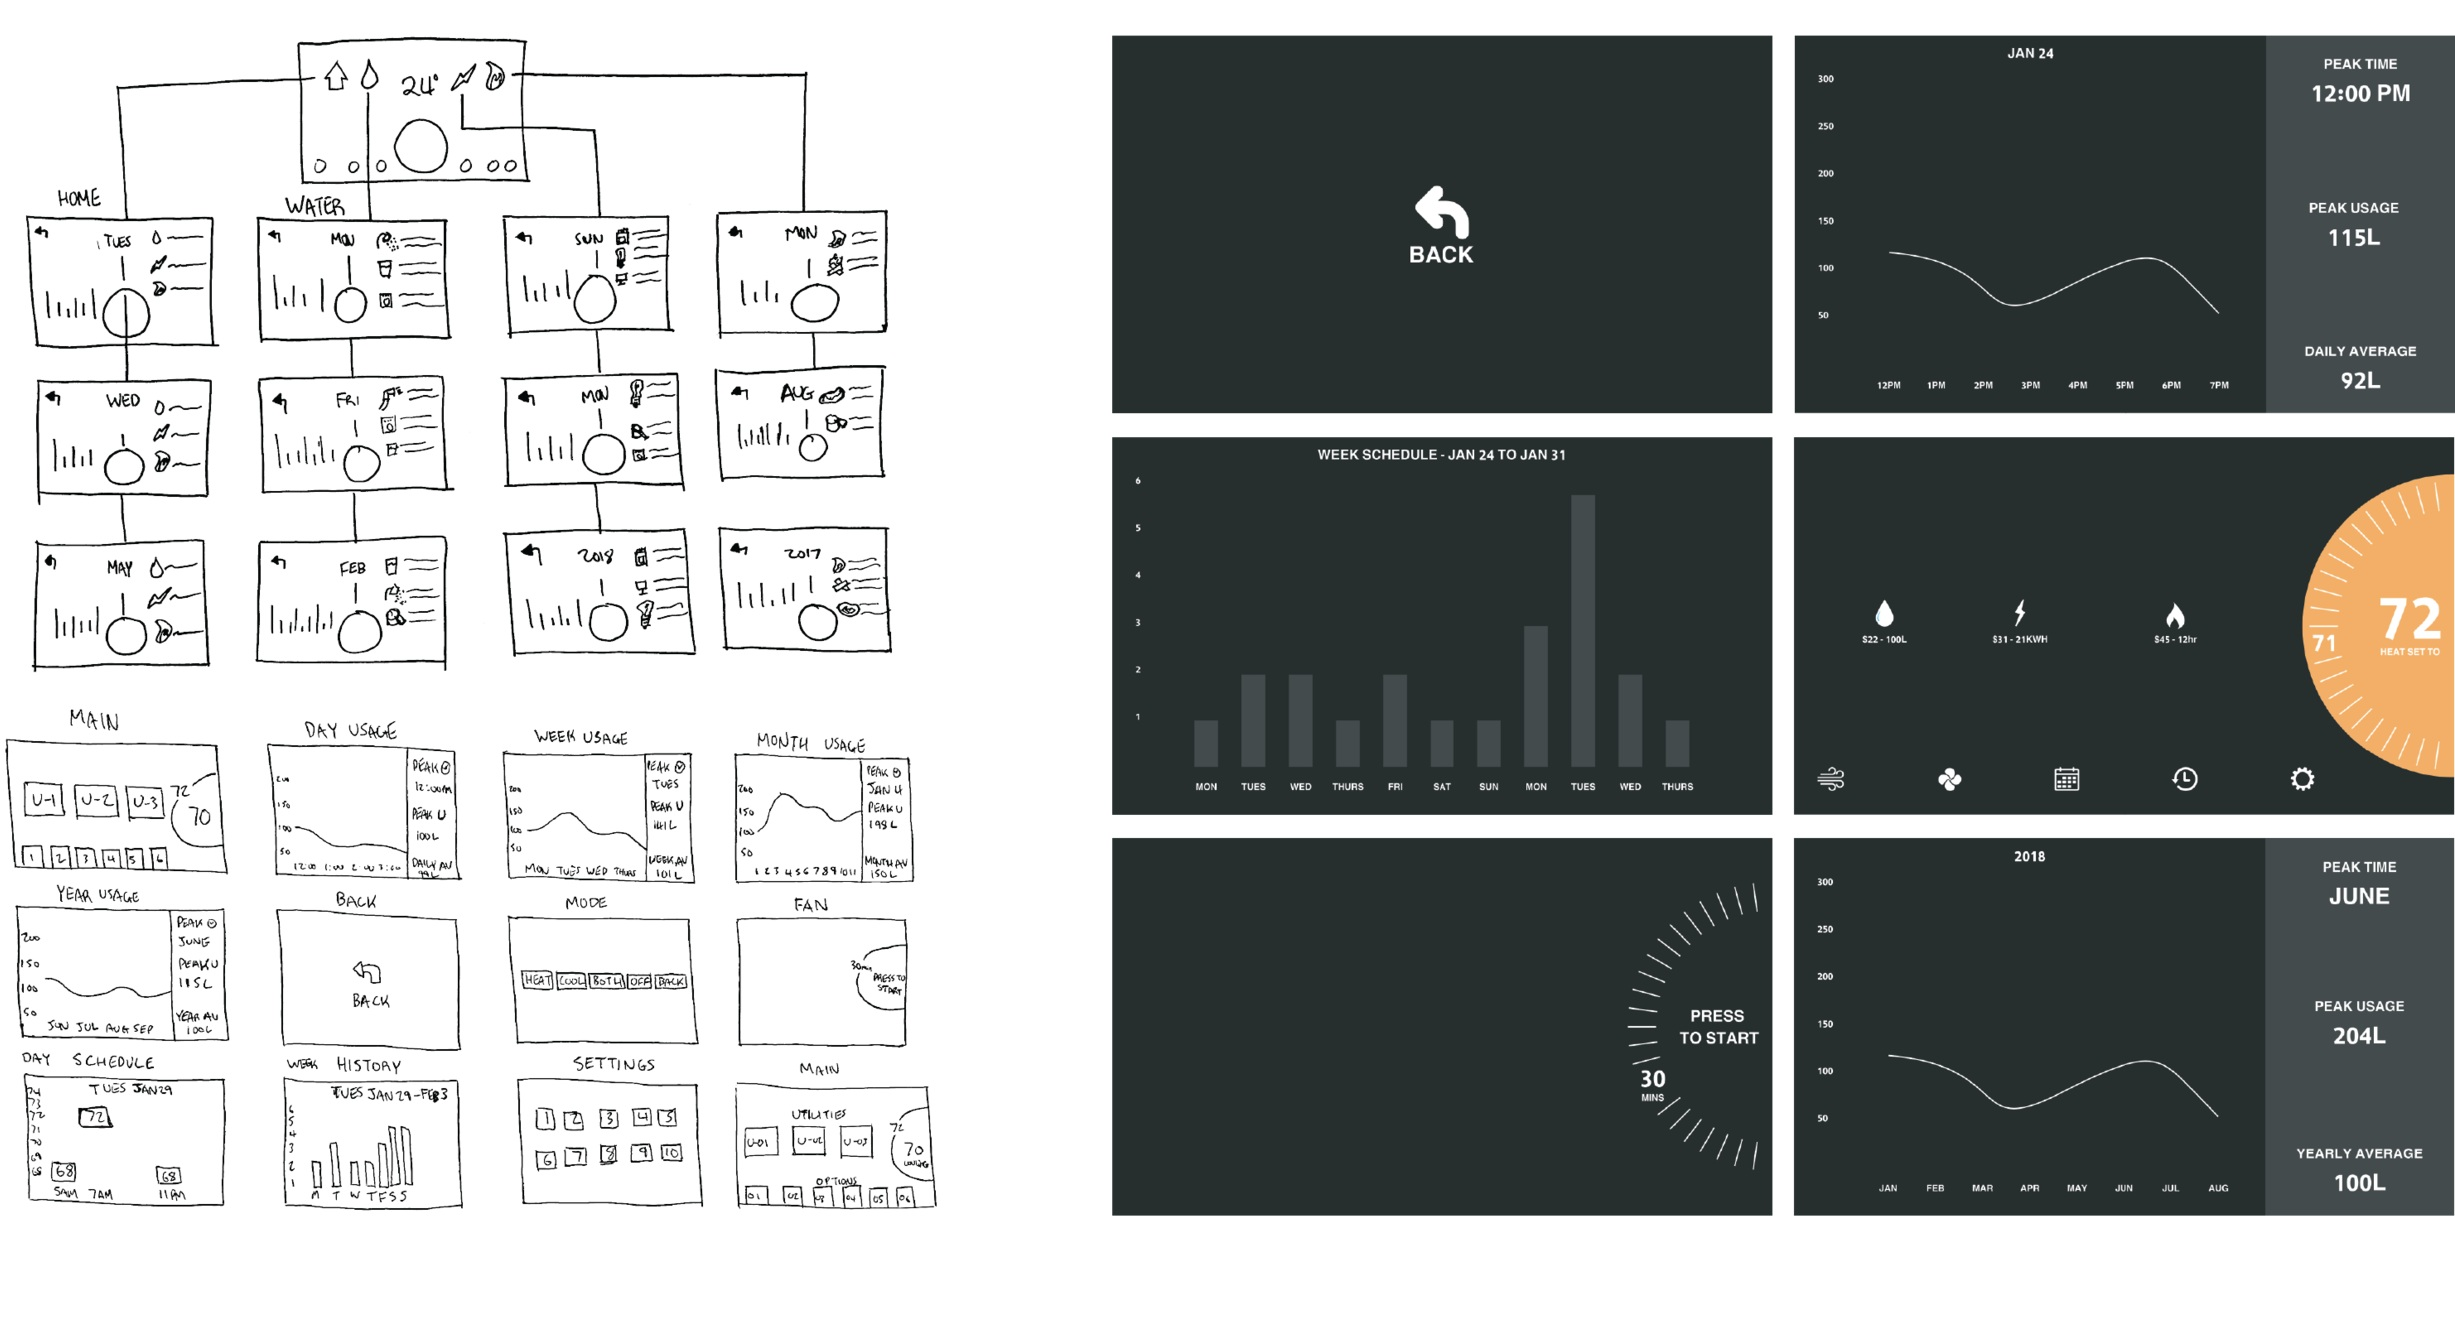 UI Development - Using sketching and Illustrator, wireframes were developed. With InVision, these wireframes were used to create a working prototype that was later implemented during user testing.